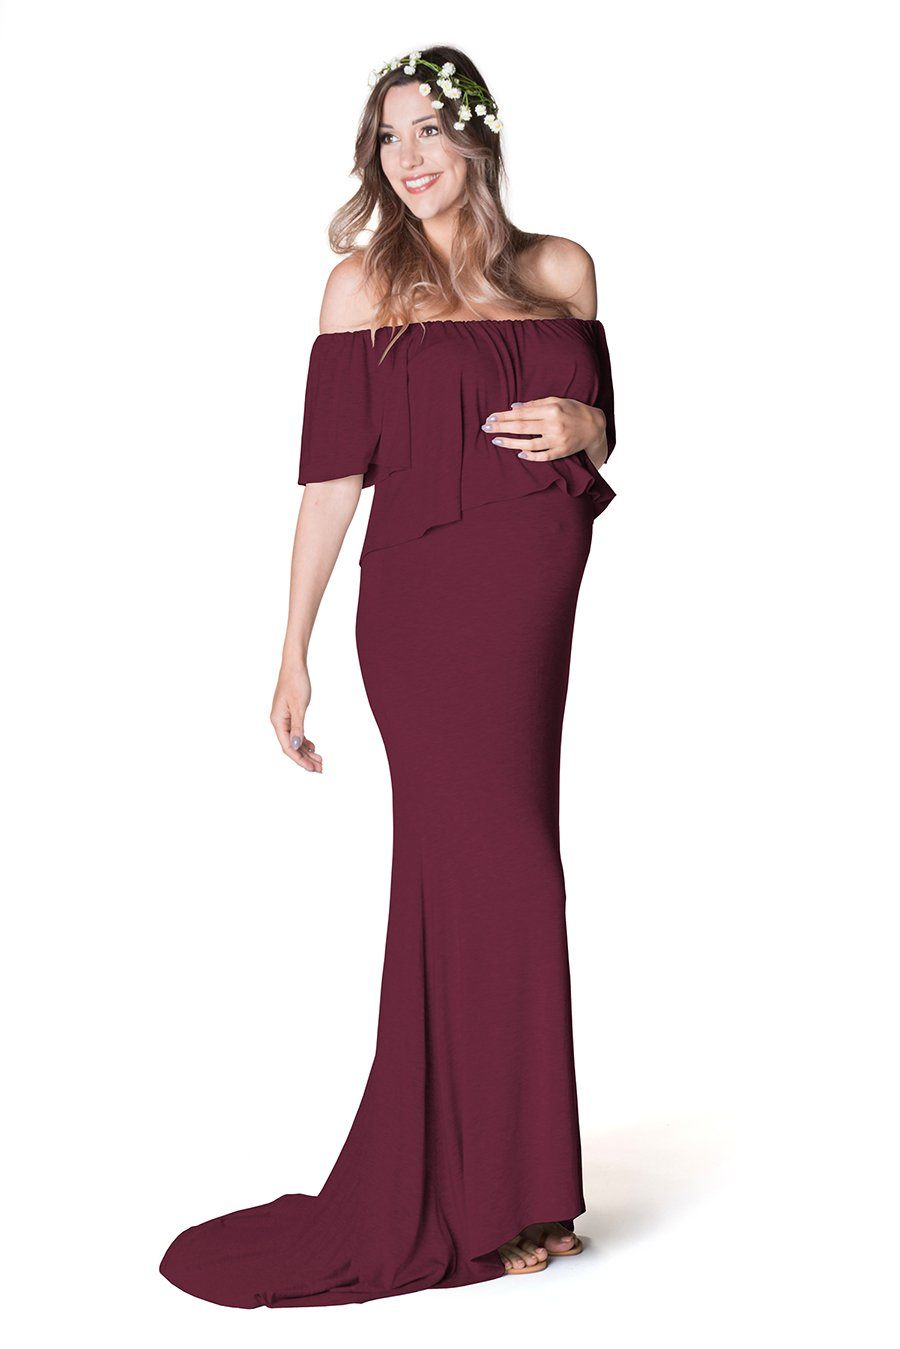 Simply Gorgeous Maternity Photoshoot Dress Dress Bun Maternity Nursing Apparel S/M wine